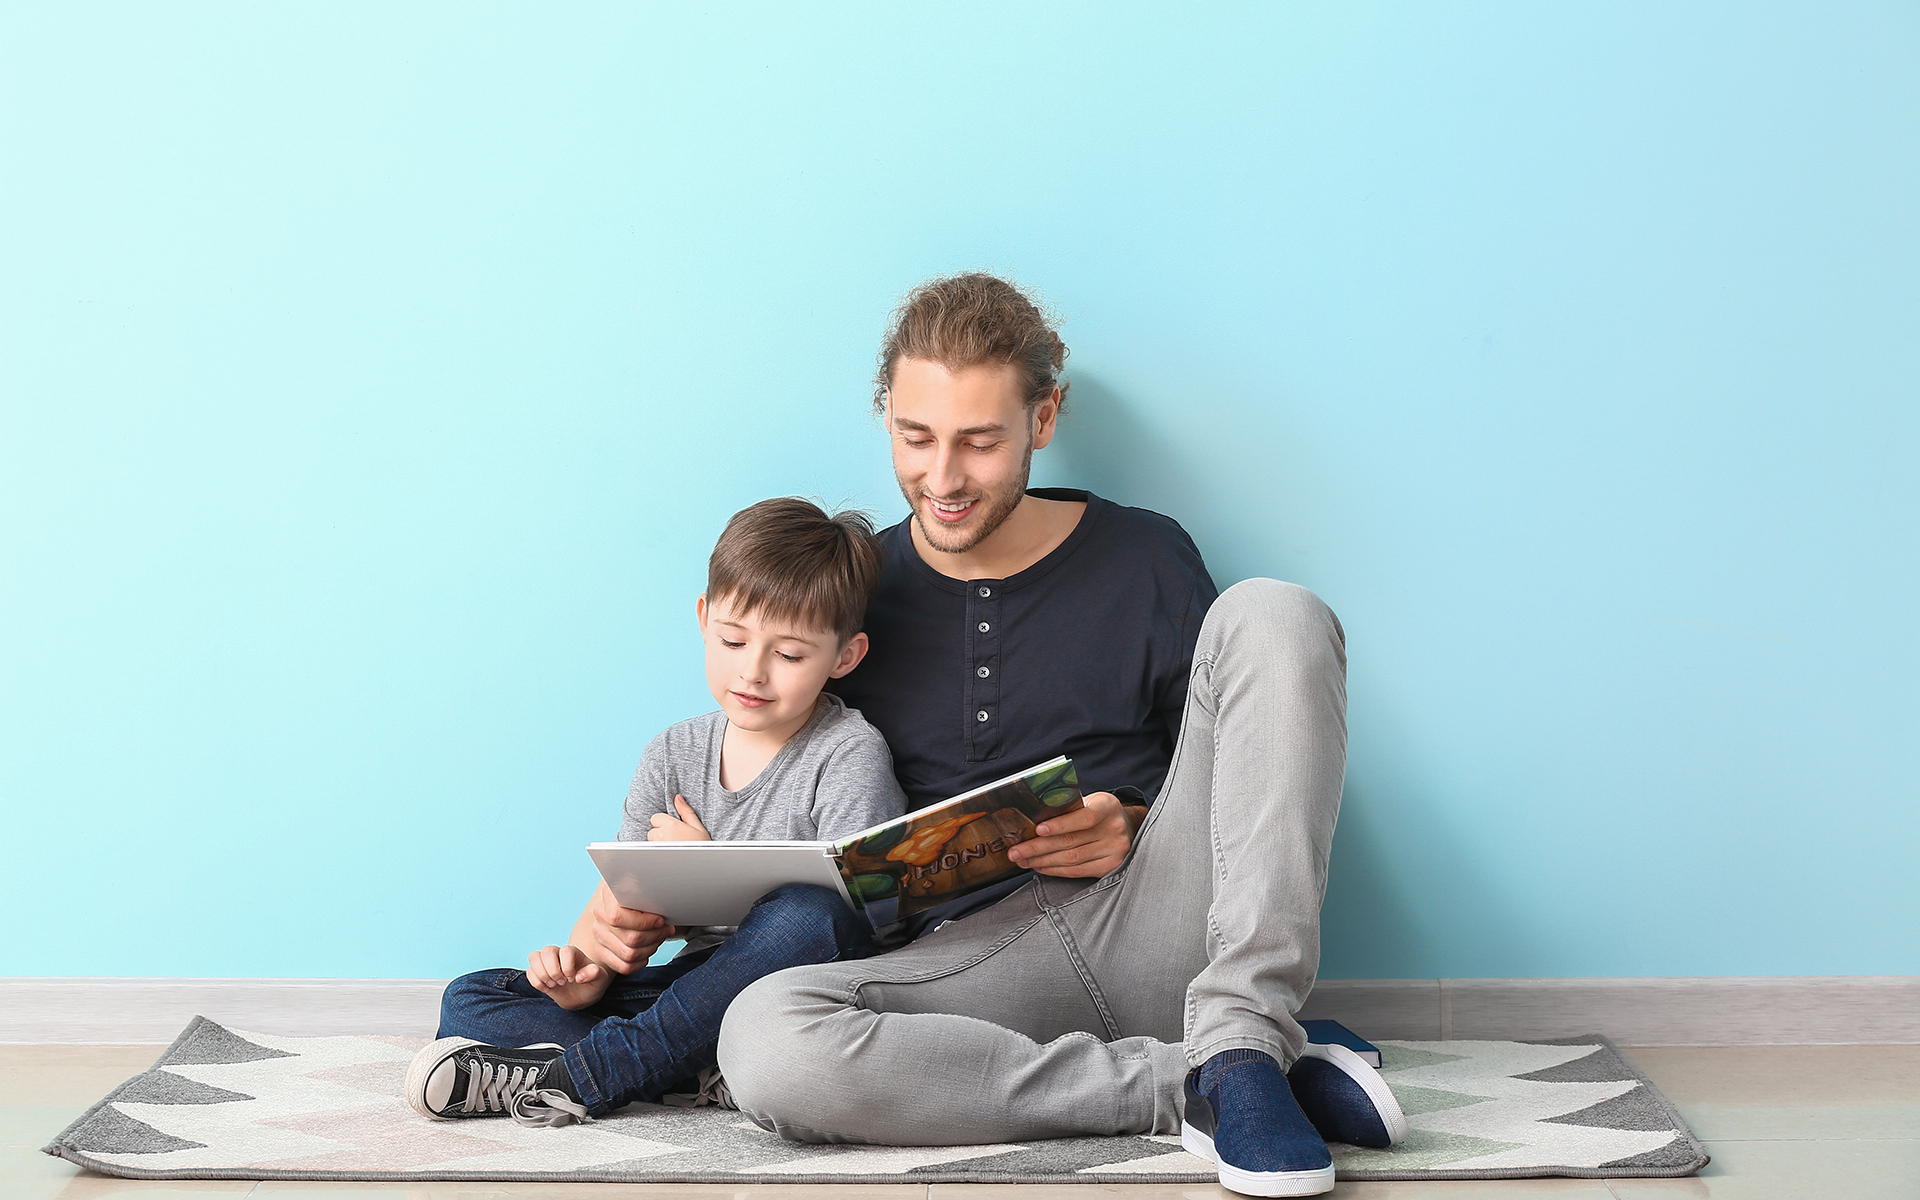 Reading Aloud: Teaching Kids About Mindfulness-father and son reading a book together sitting on the floor smiling